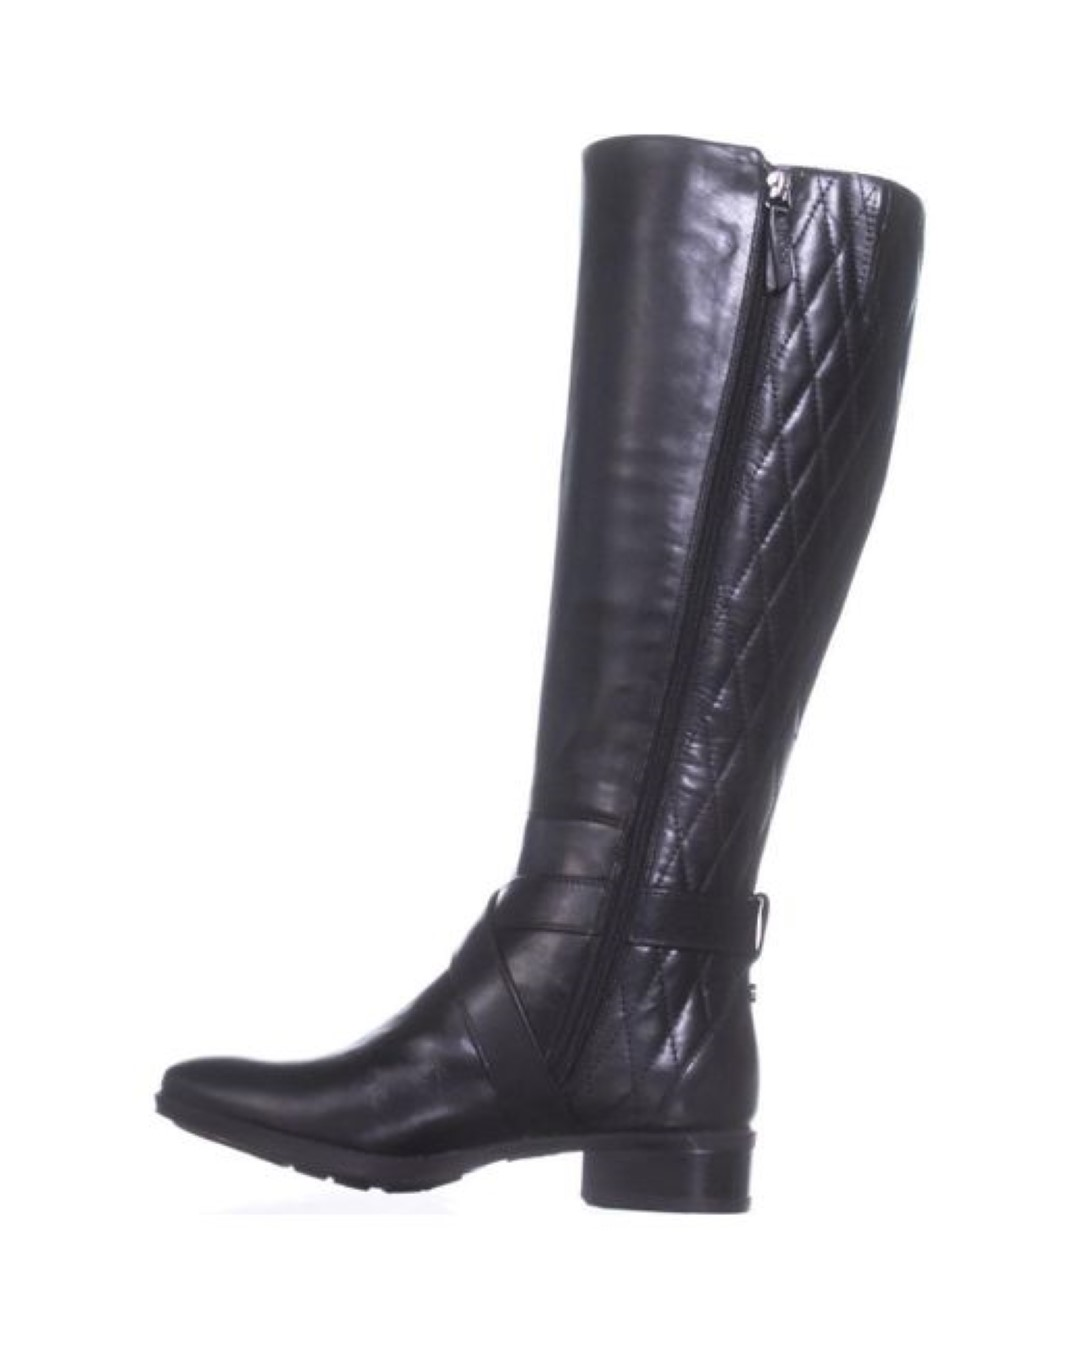 03505df786a DKNY Womens mattie wc Closed Toe Knee High Fashion Boots US